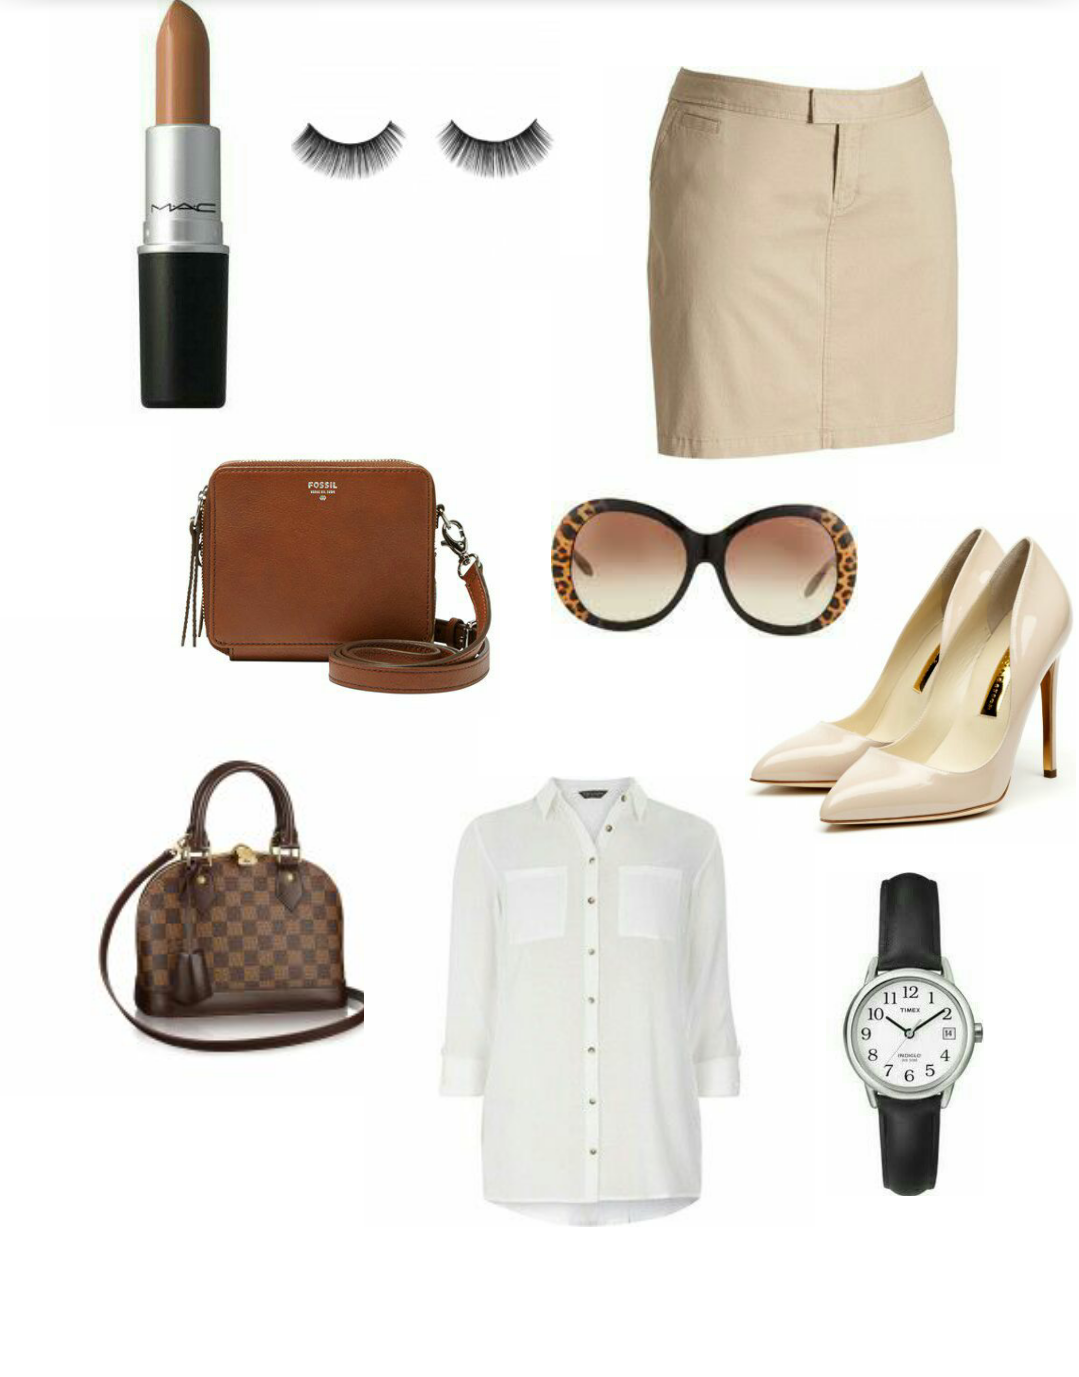 e1ac78016a STYLE THE LOOK: White shirt and mini khaki skirt - Inspired By Mo'Cheddah!